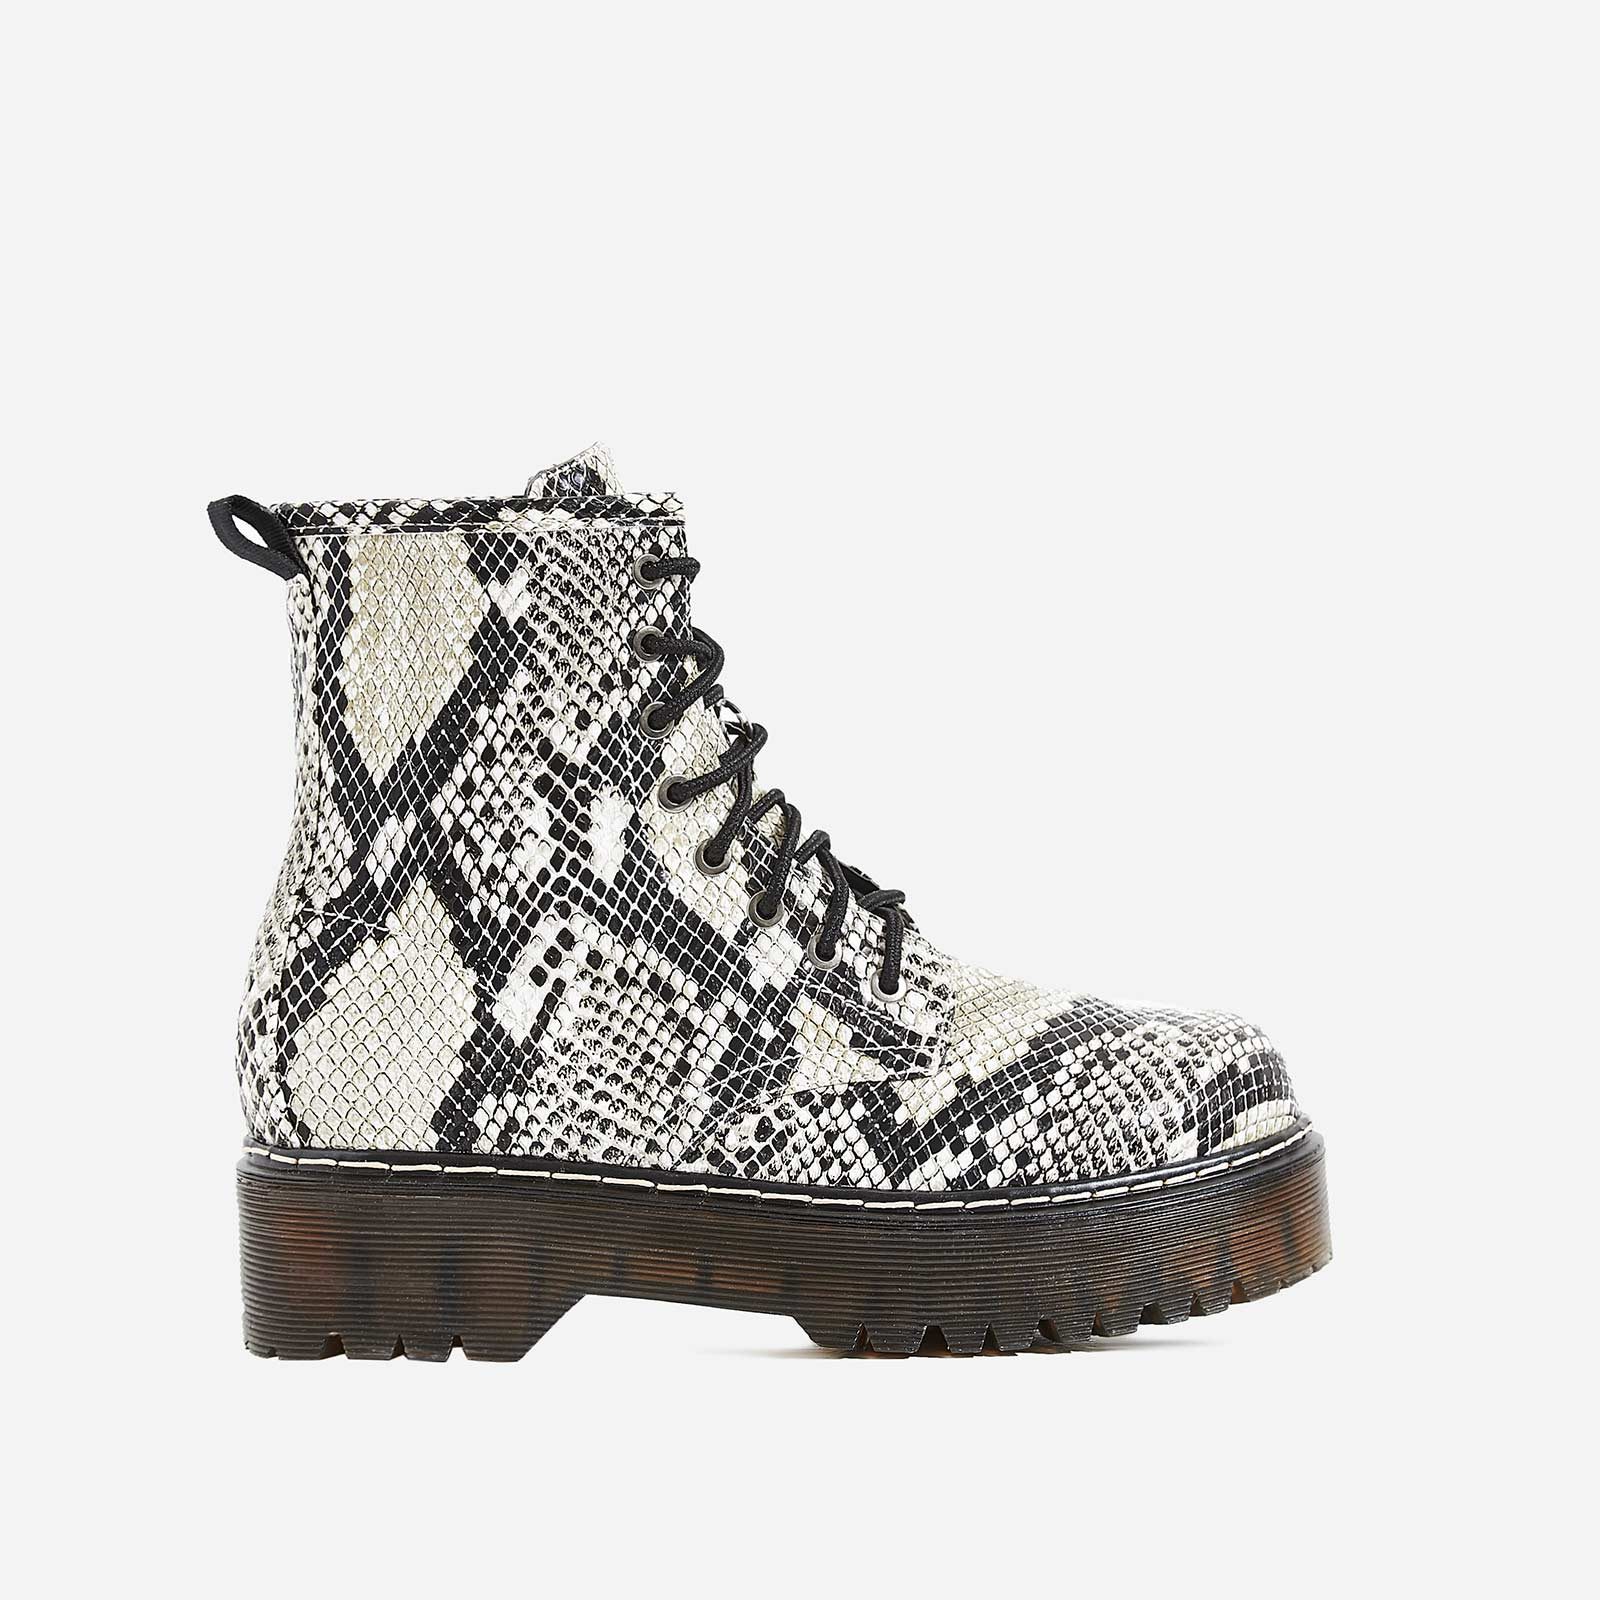 Adler Chunky Sole Lace Up Ankle Biker Boot In Grey Snake Print Faux Leather